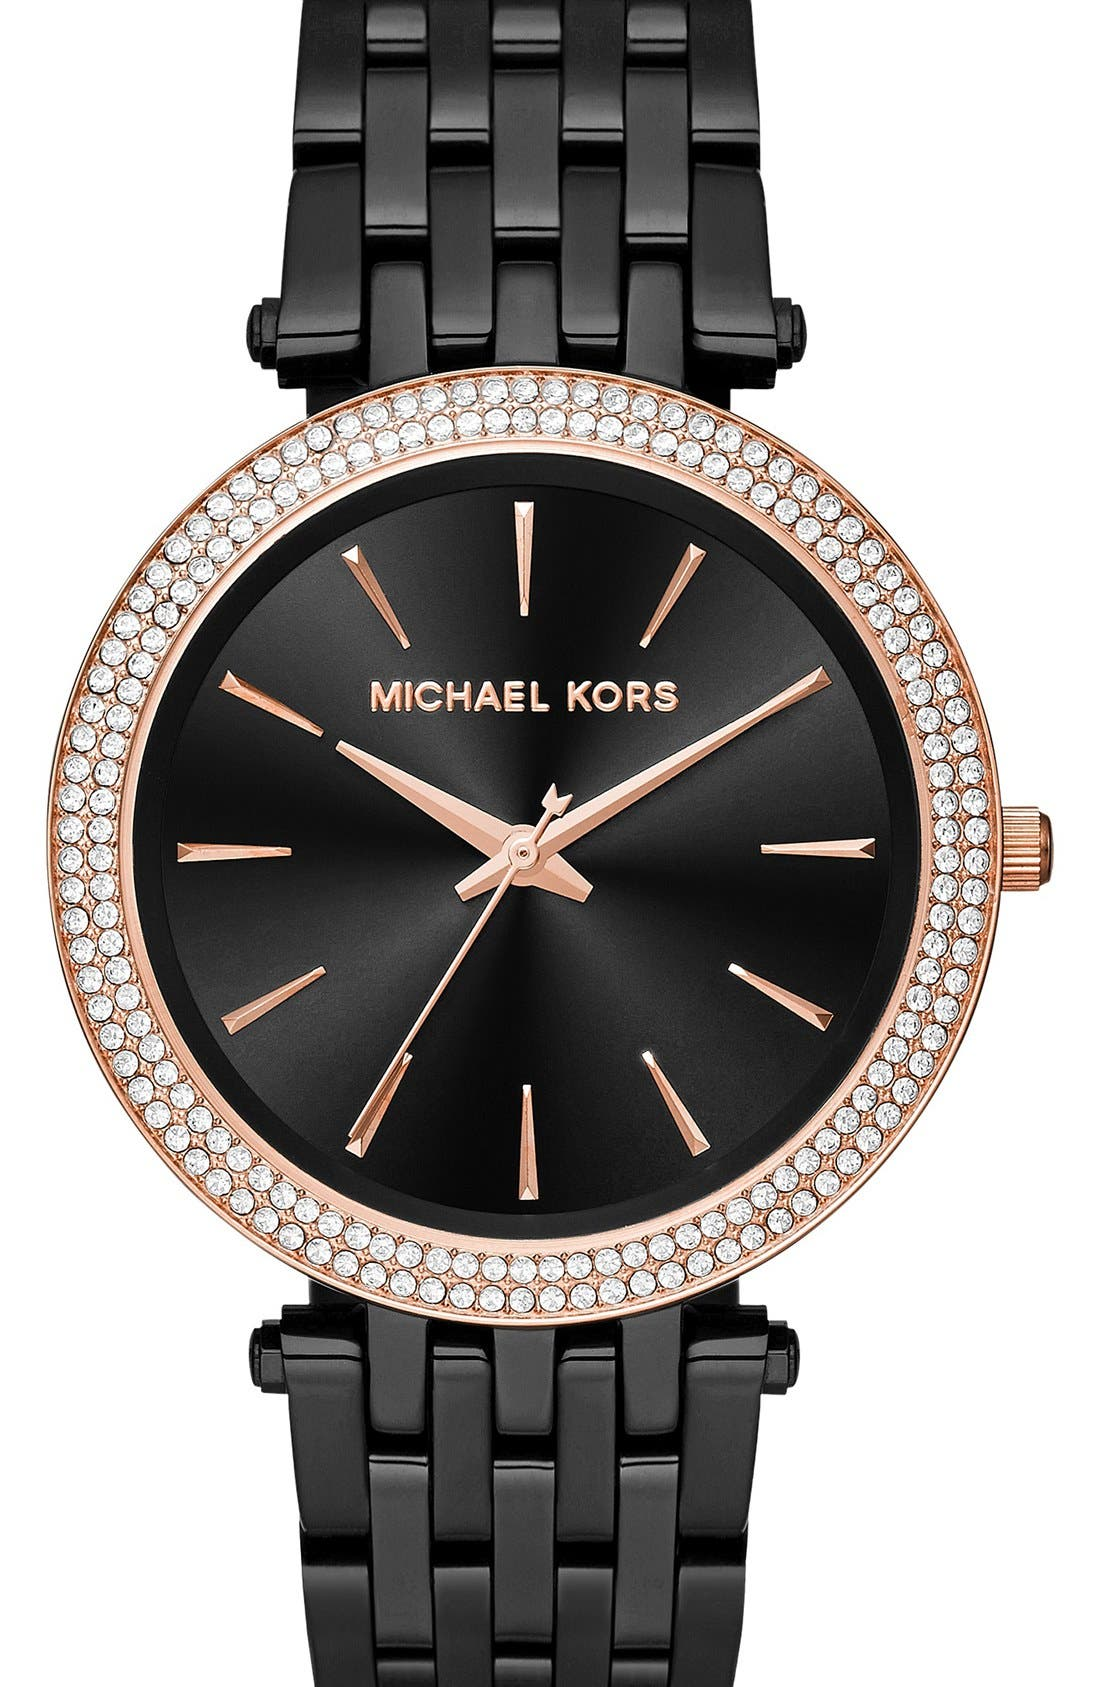 MICHAEL KORS, 'Darci' Round Bracelet Watch, 39mm, Main thumbnail 1, color, 001